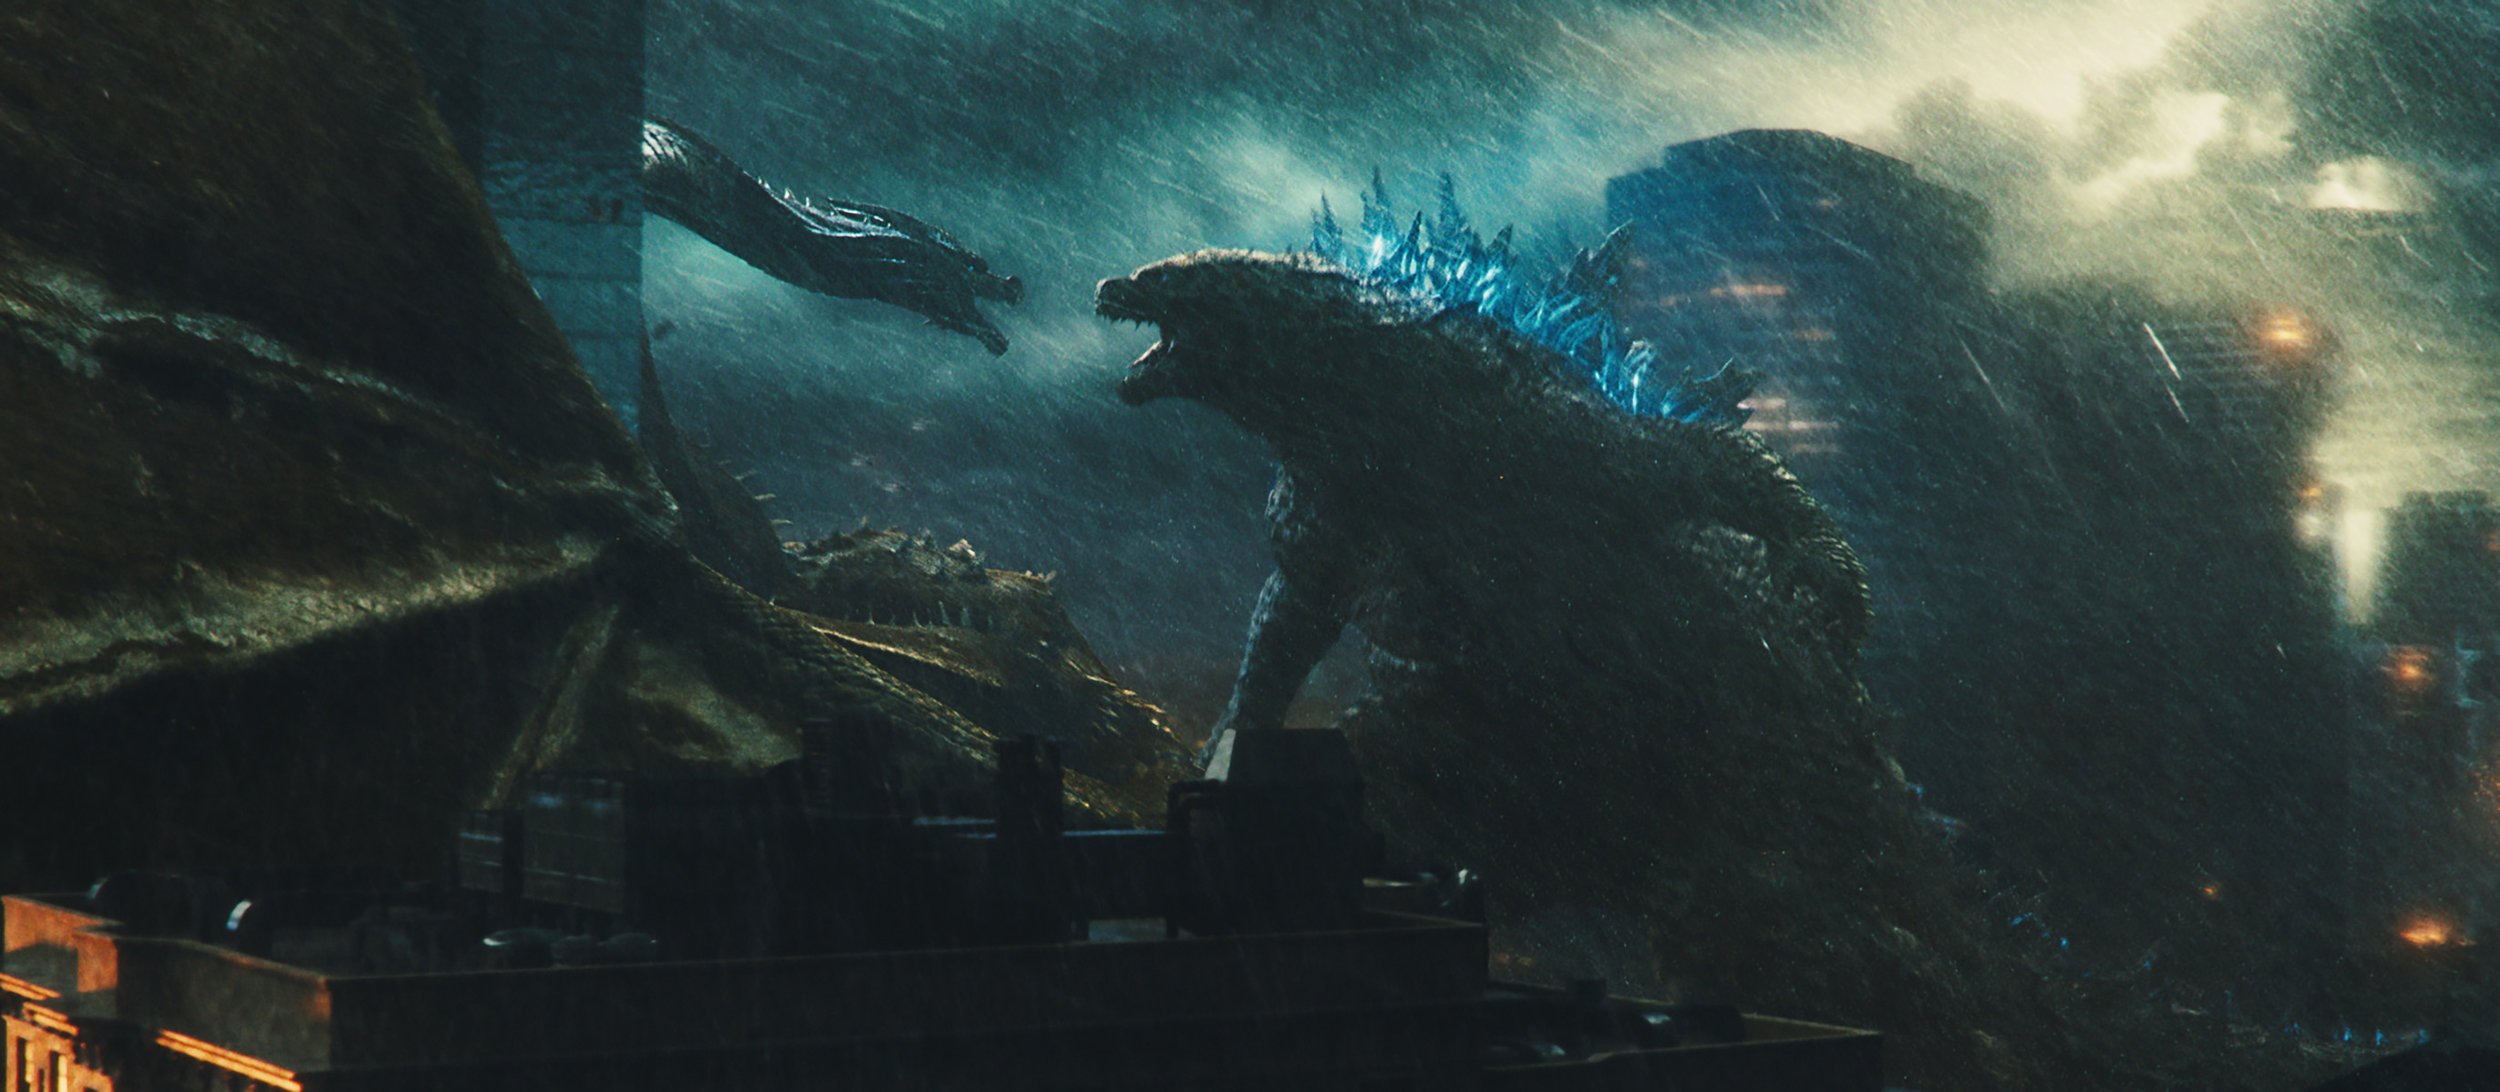 Godzilla and King Ghidorah dance in the dark for the Throne of the Titans.